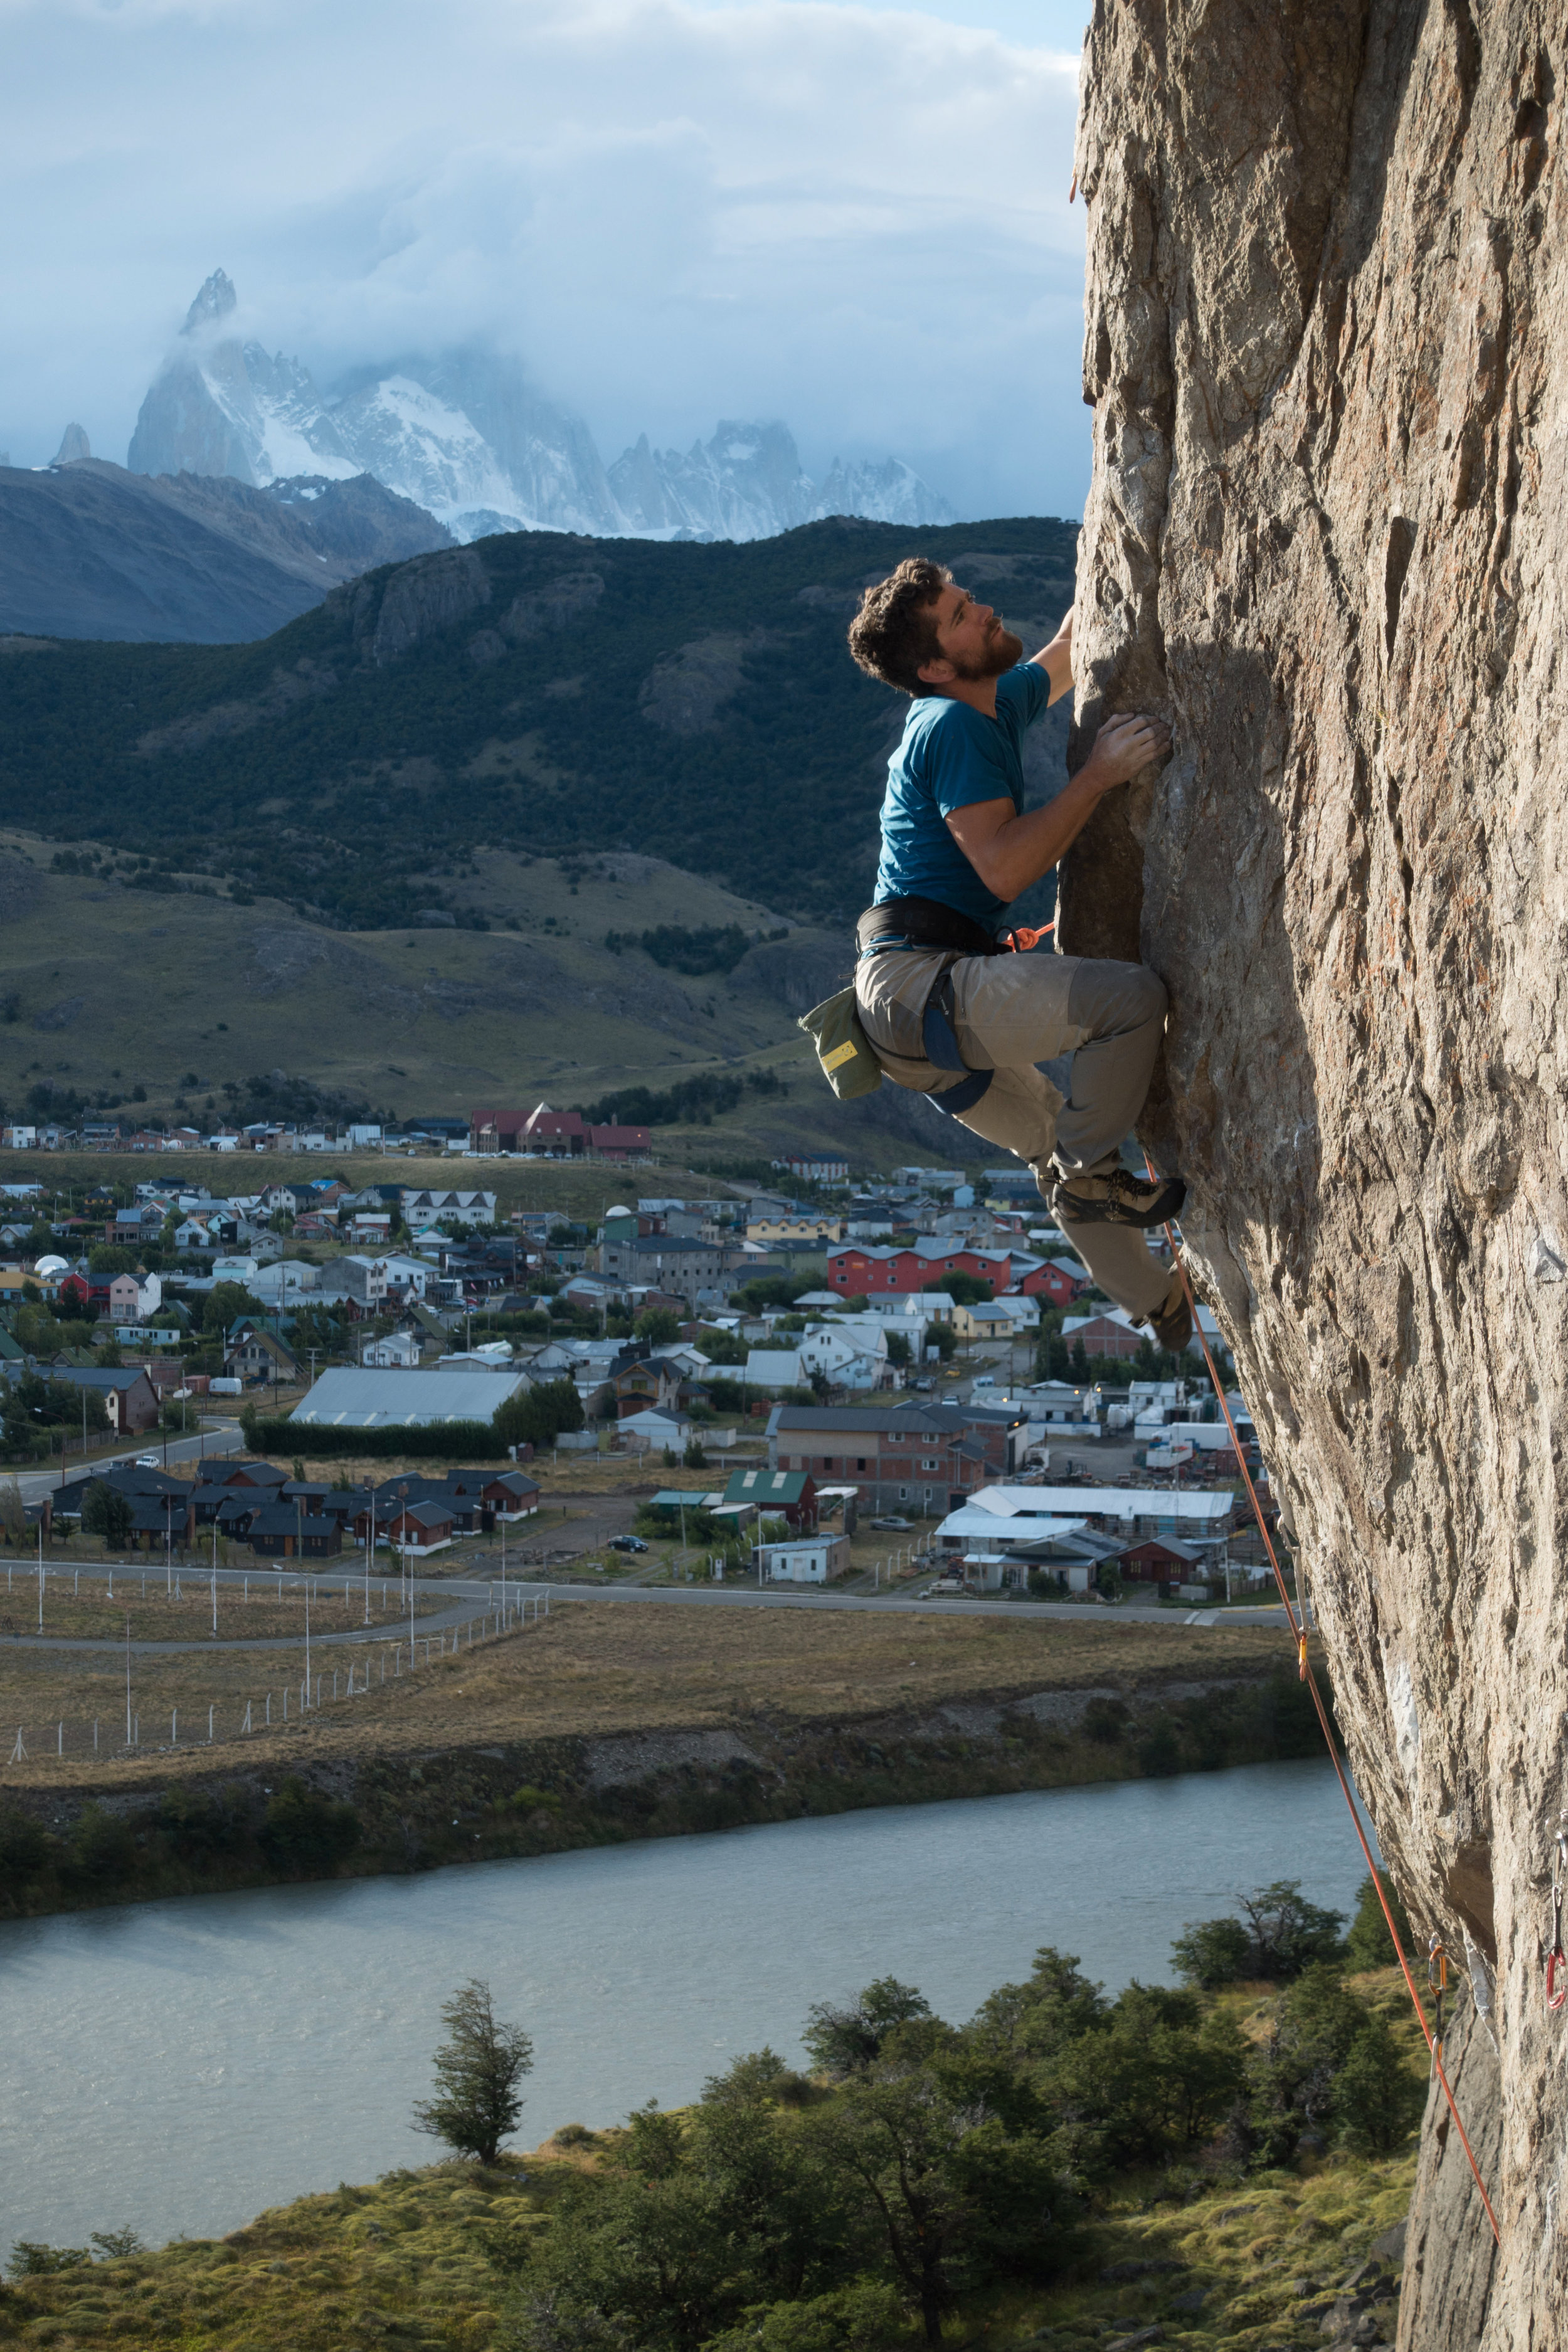 Sam Lambert sport climbing in the sun while a storm rages in the mountains. Photo by Michelle Kadatz.